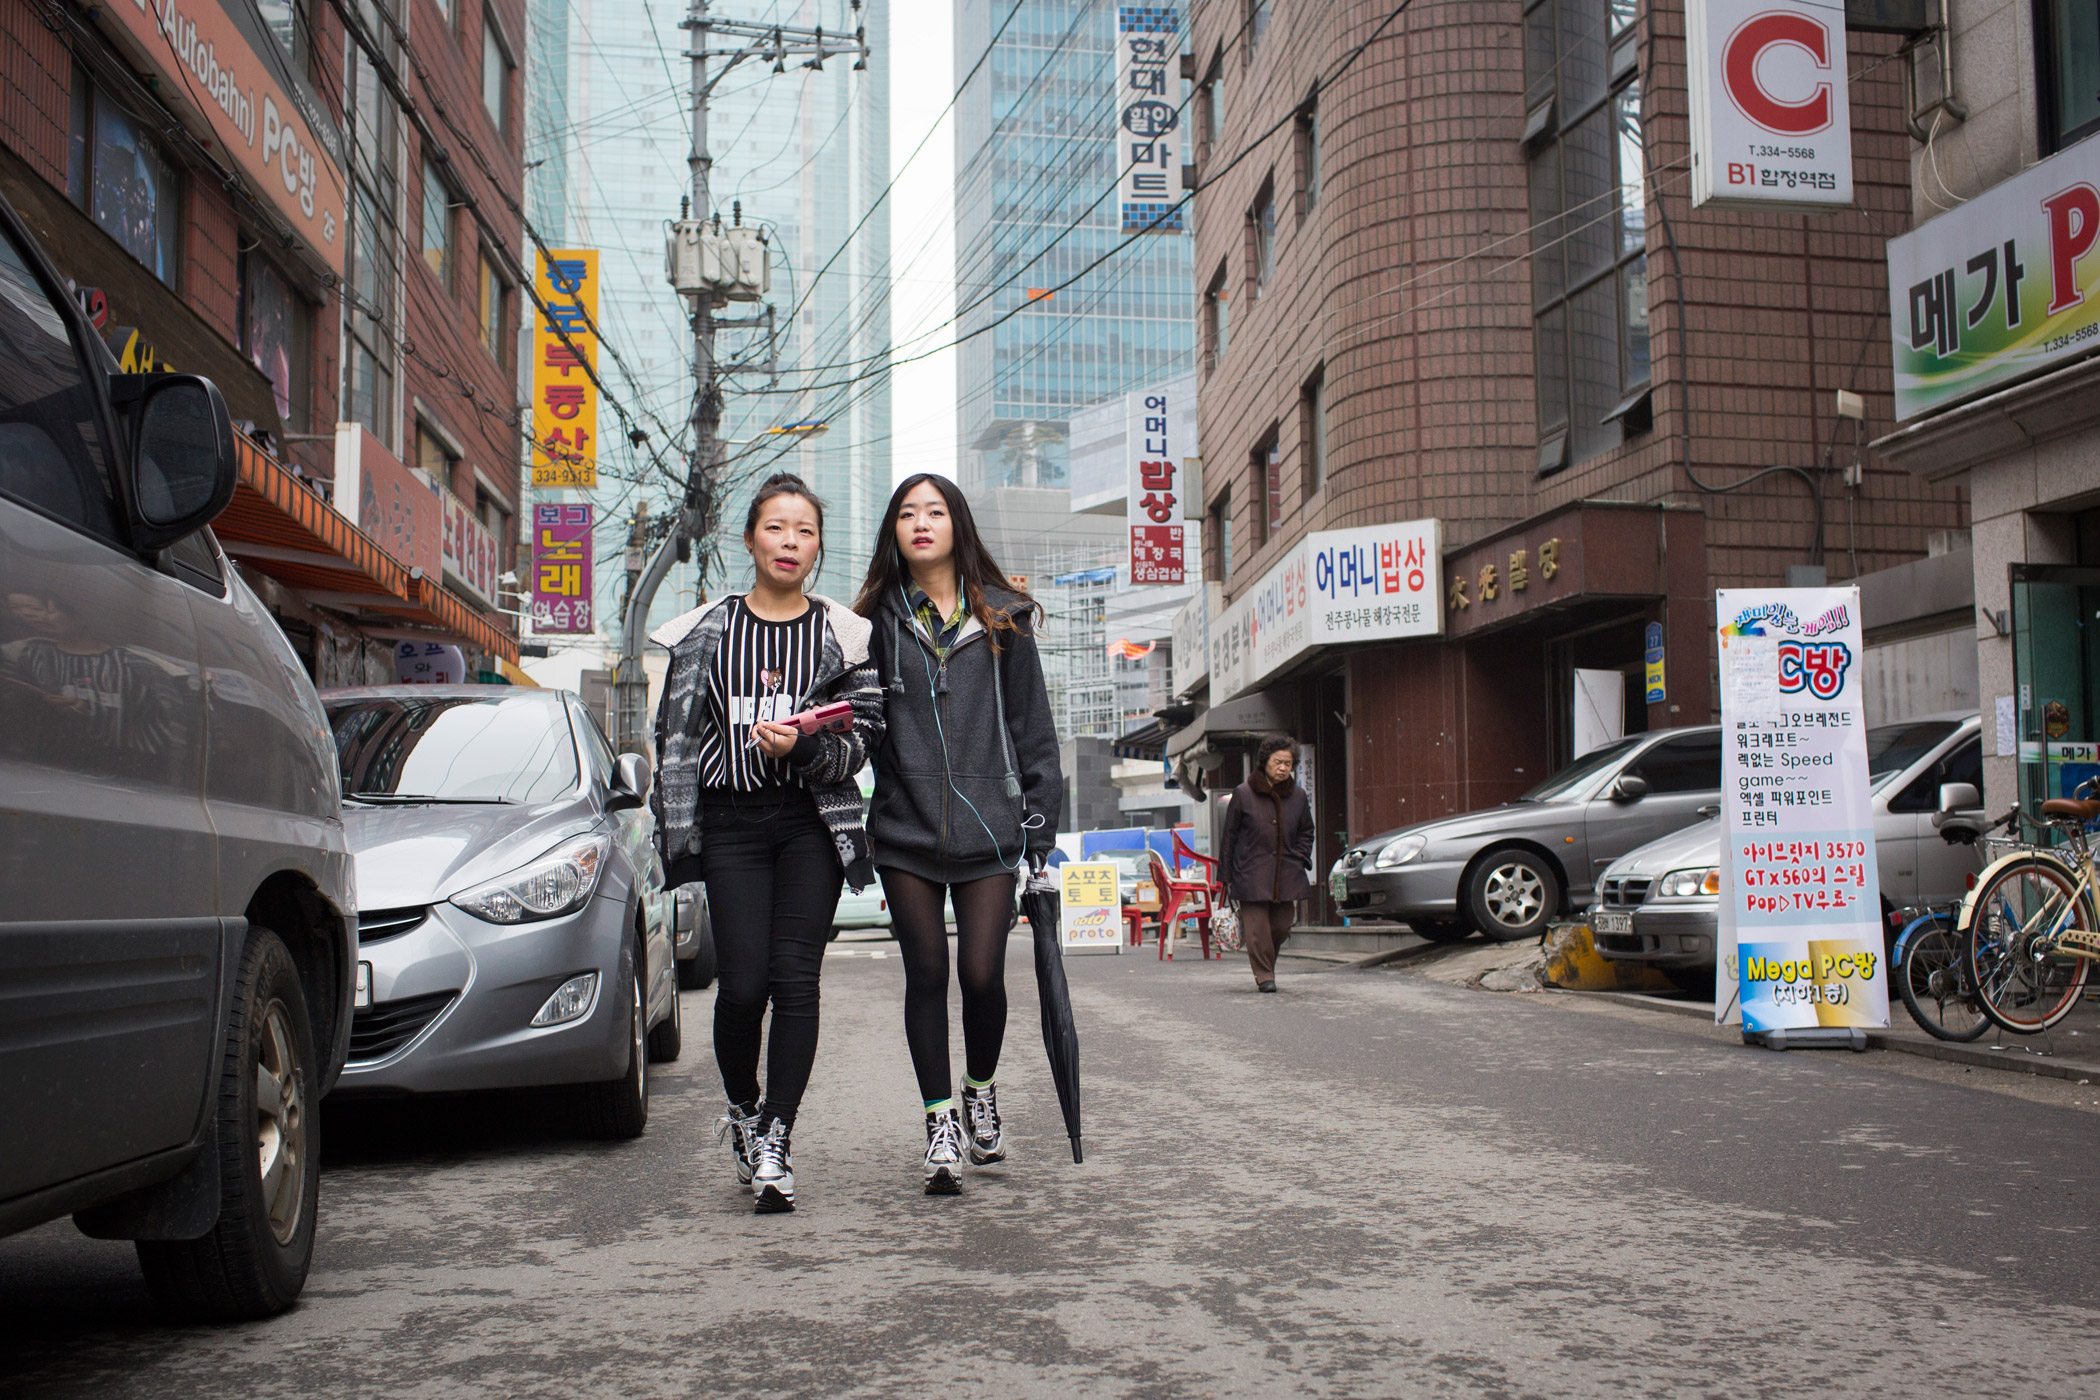 Donning matching shoes, North Korean refugees Kim Kyoung-ok,  and Sarah walk arm-in-arm on their way to a Christian church service on Feb. 21, 2015 near Hapjeong, Seoul, South Korea. The women met shortly after they each arrived separately in South Korea at a resettlement camp for refugees.